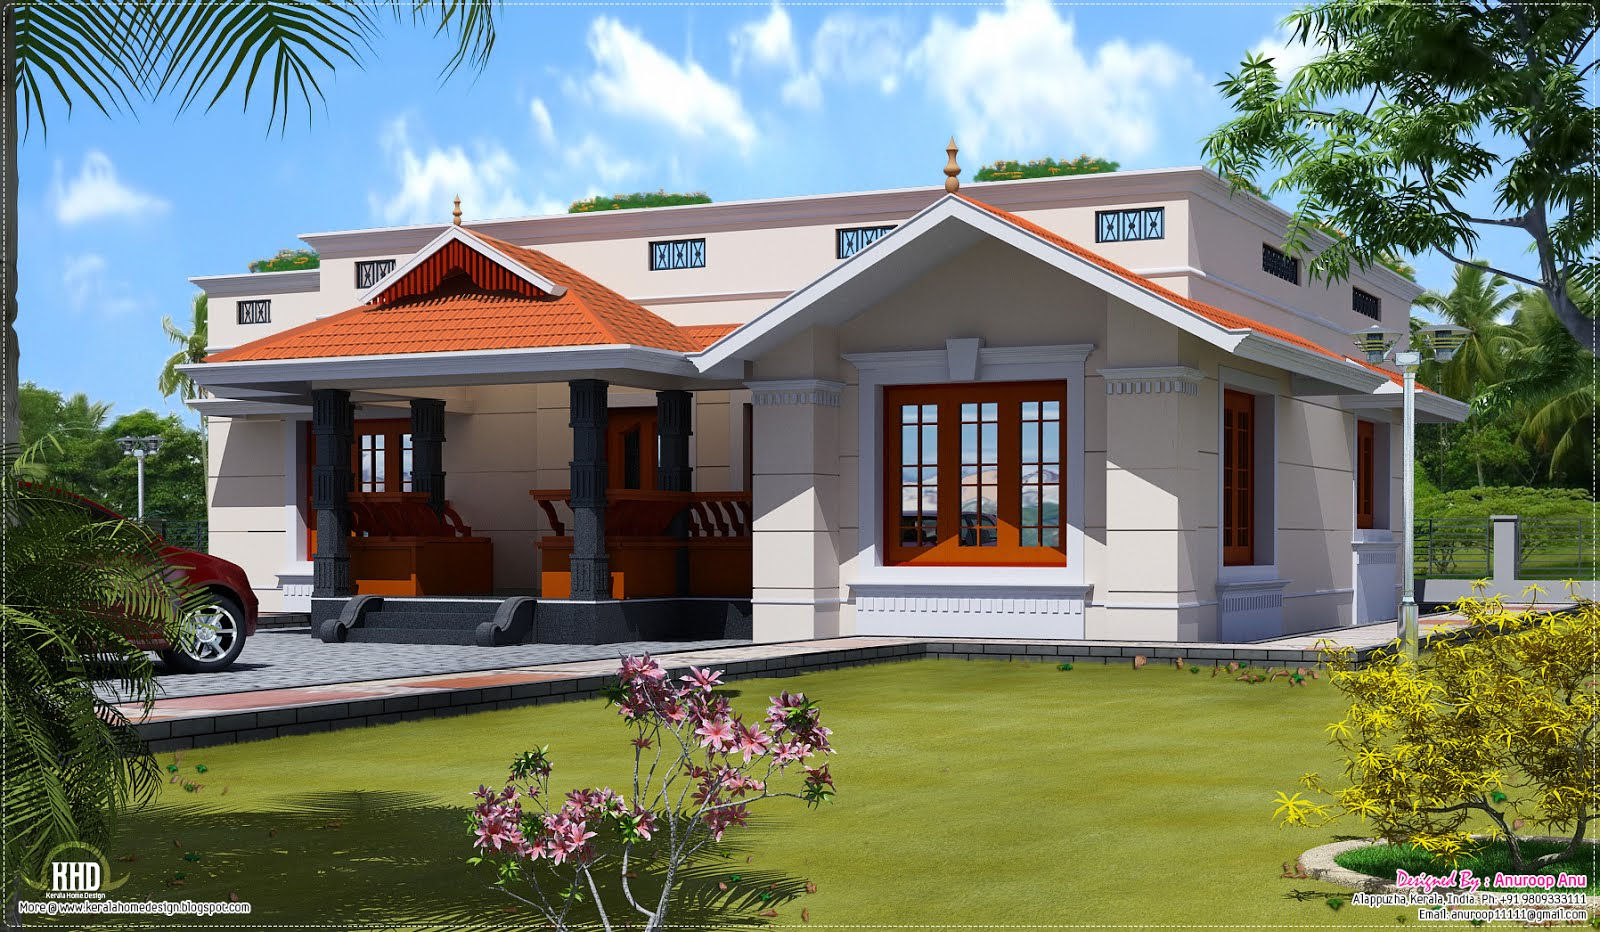 Single floor 1500 sq.feet home design | House Design Plans